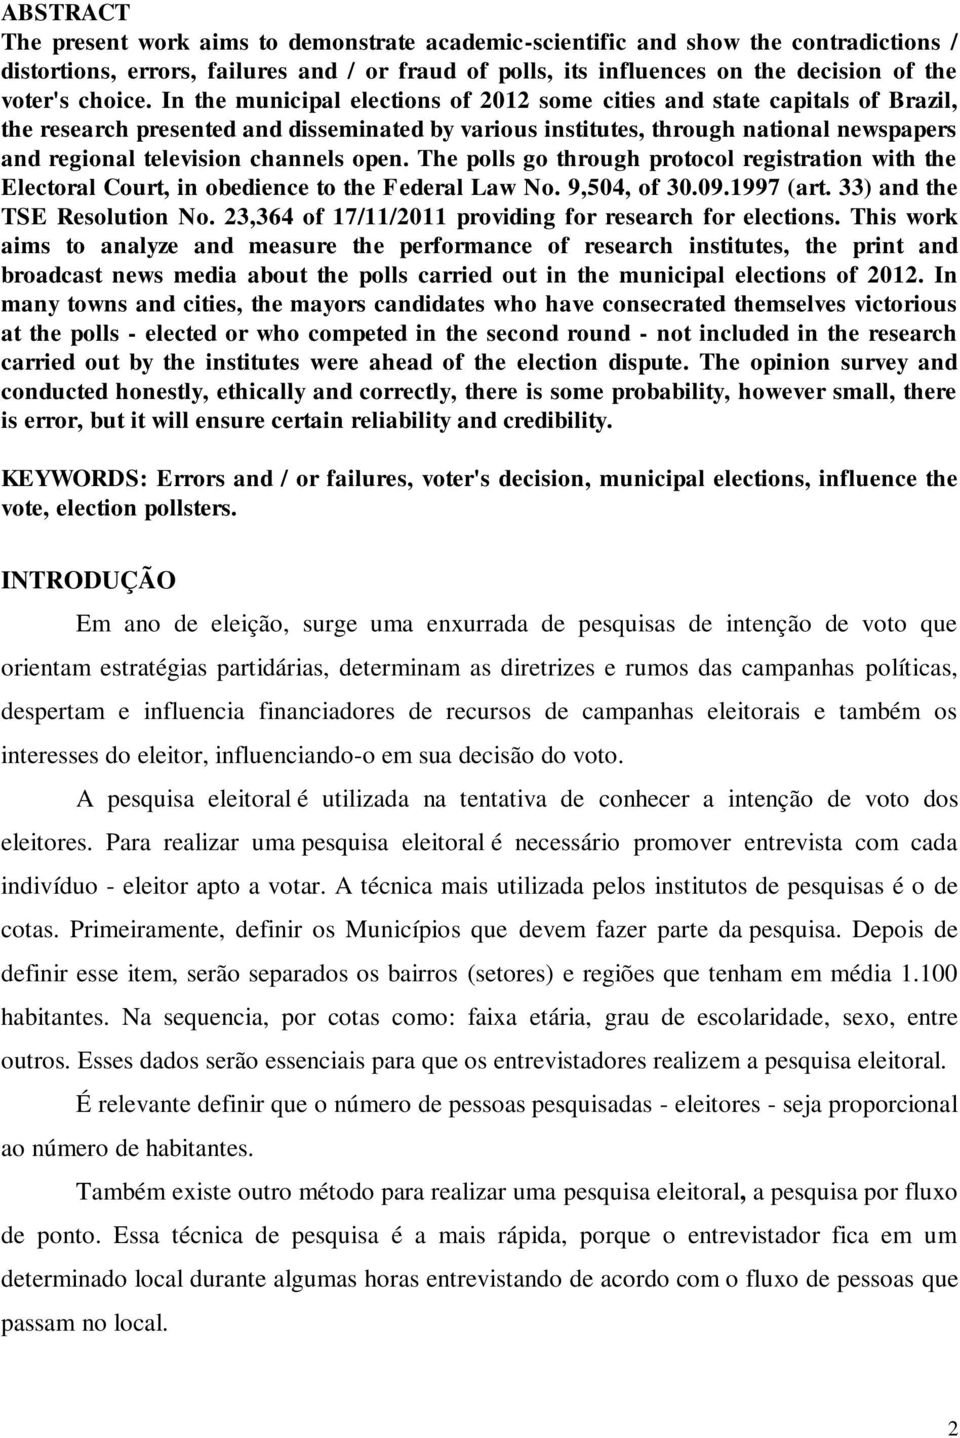 In the municipal elections of 2012 some cities and state capitals of Brazil, the research presented and disseminated by various institutes, through national newspapers and regional television